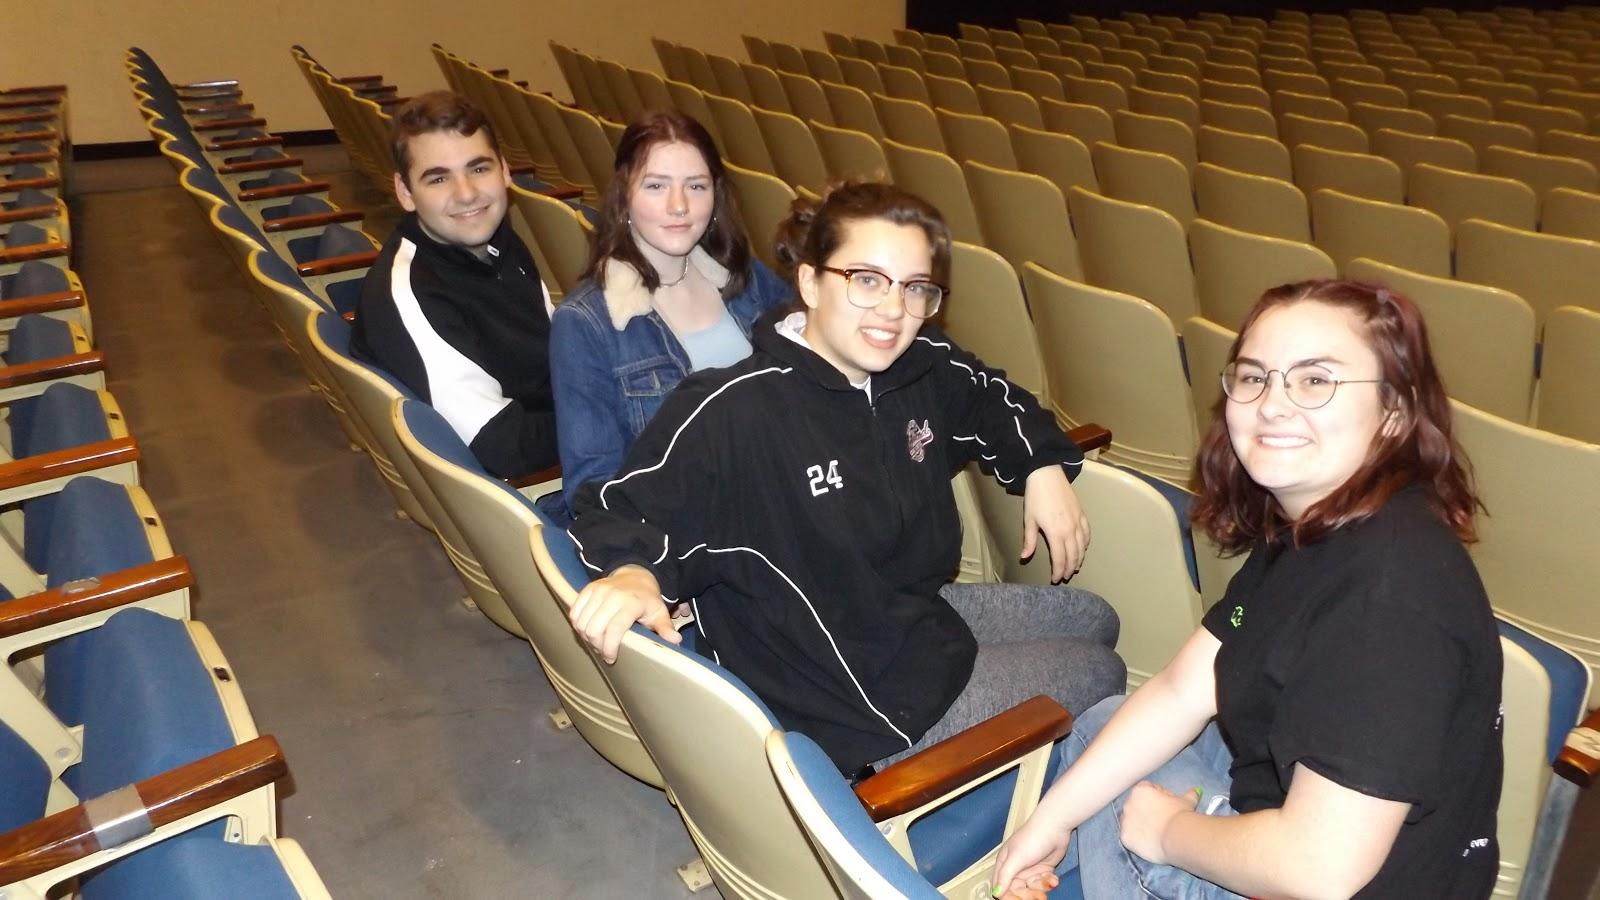 David Levine, Molly McNulty, Angela DiLeo and Katelyn Brennan